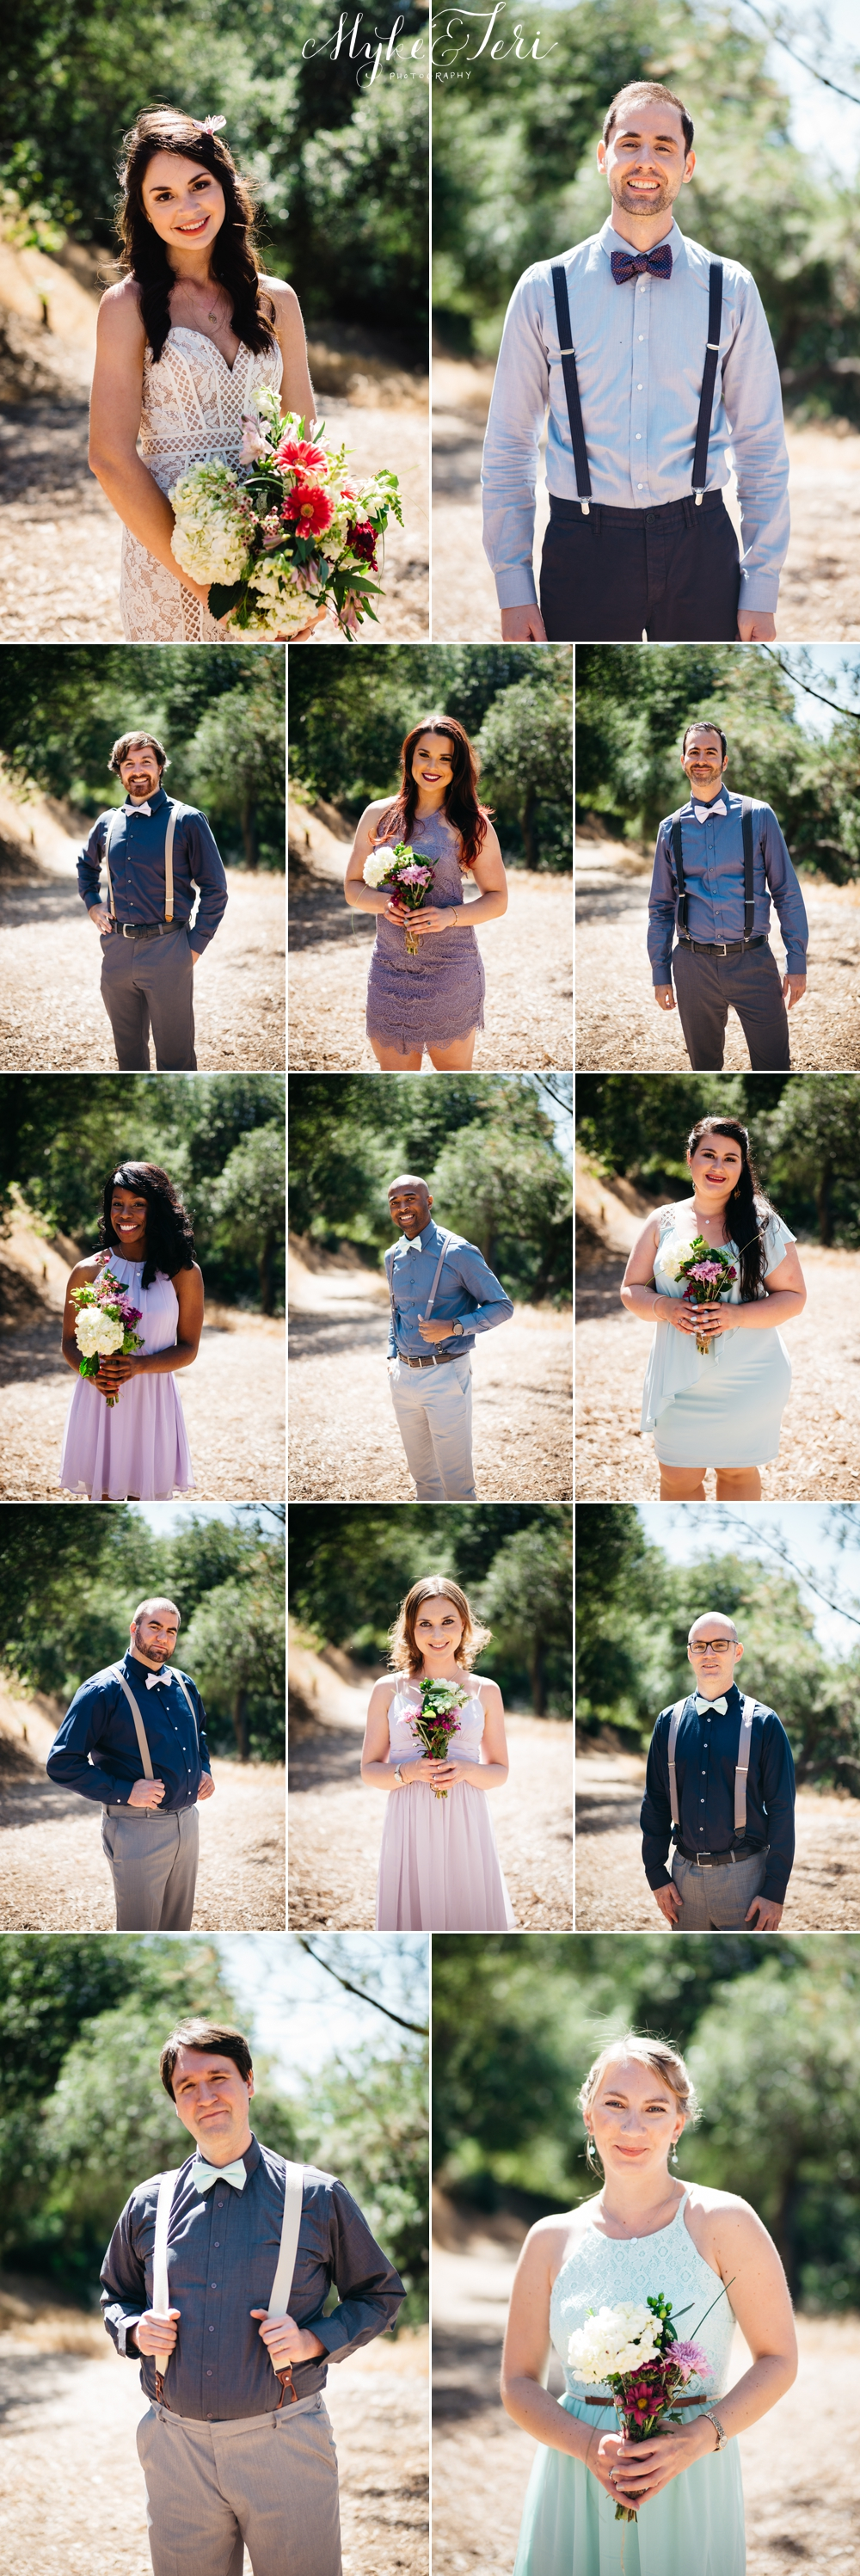 Eco-Friendly Bohemian Beverly Hills Outdoor Wedding 8